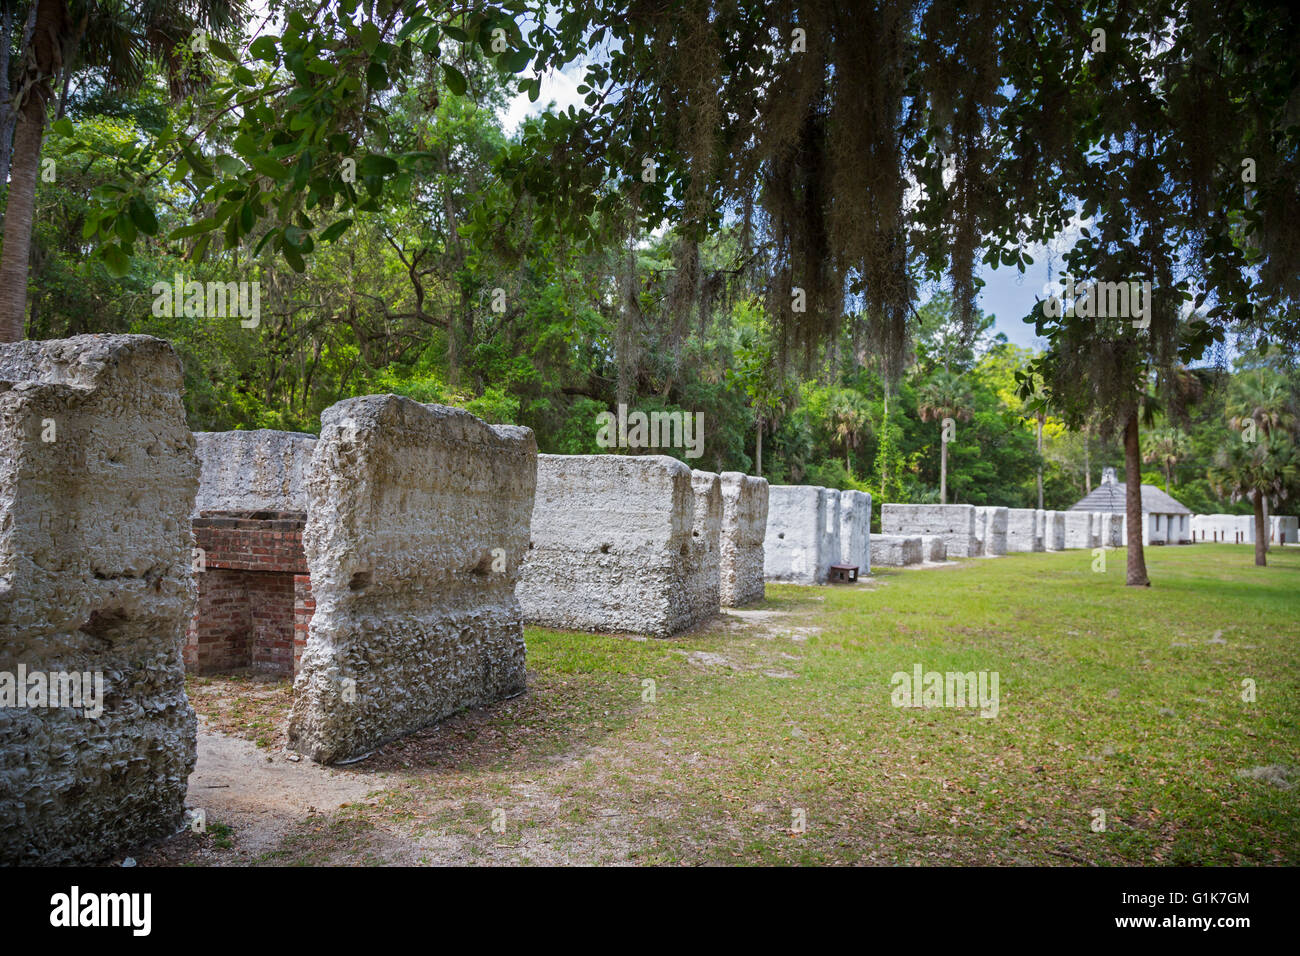 Jacksonville, Florida - The remains of slave quarters at ...